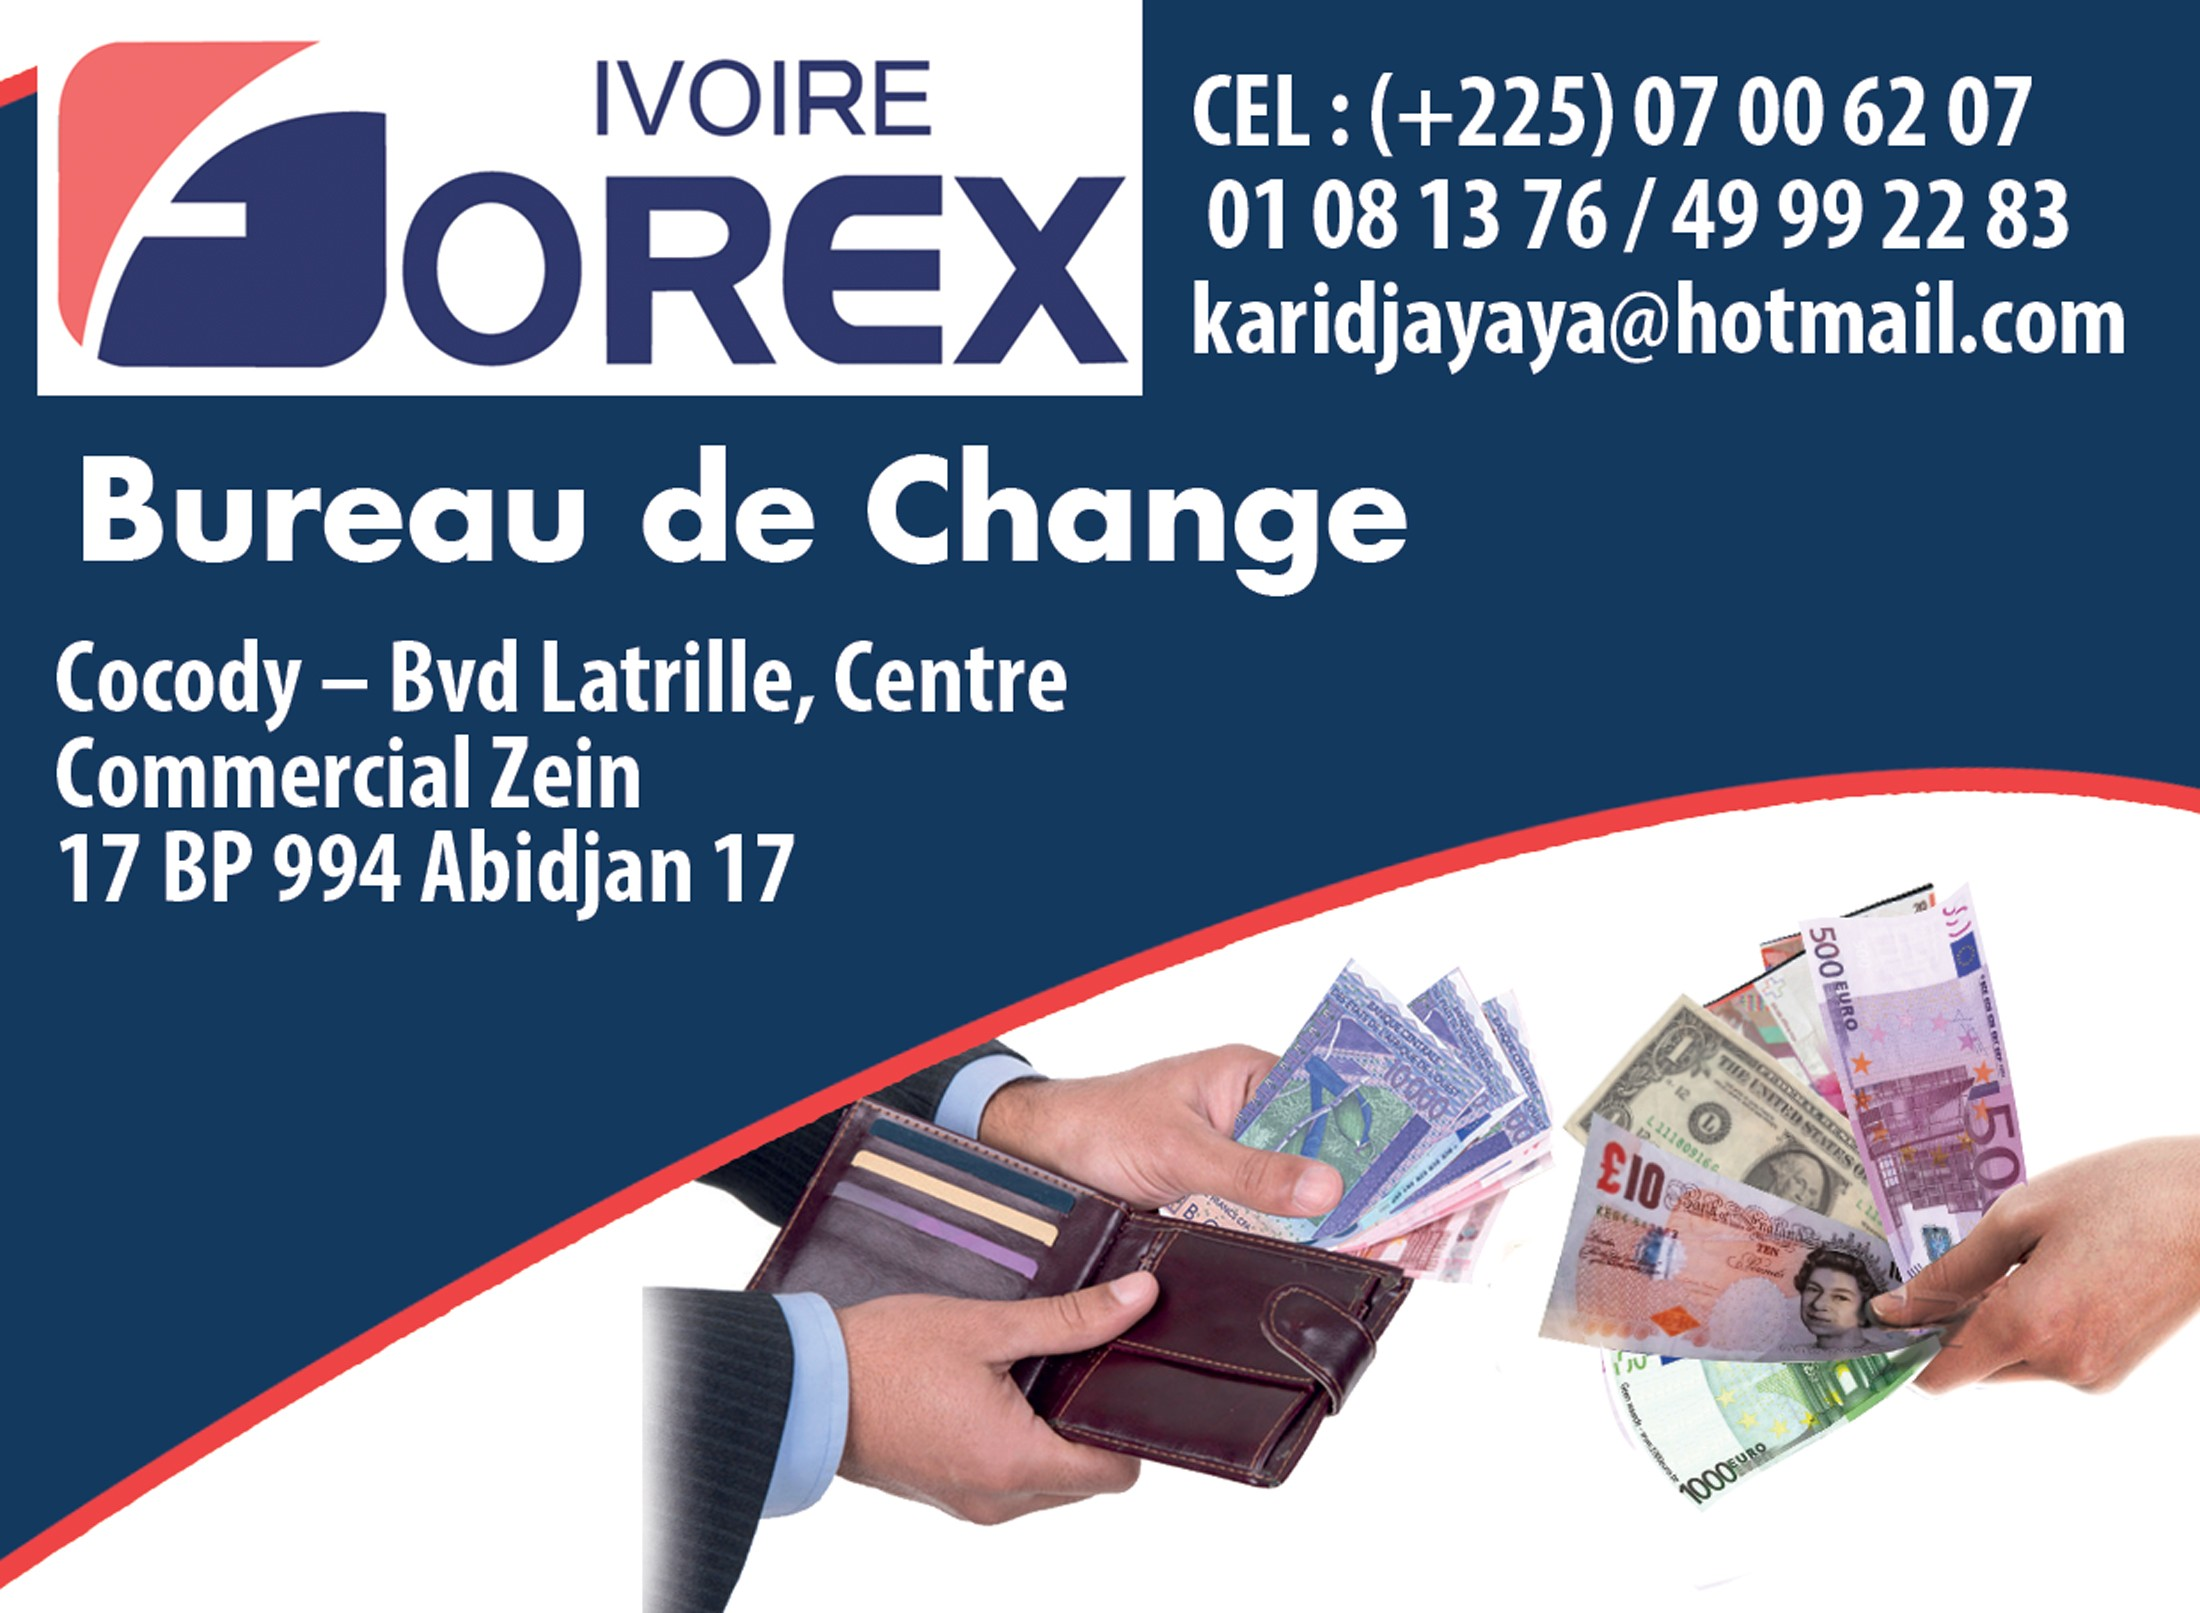 Bureau de change brest bureau de change reims my weekend - Post office bureau de change exchange rates ...